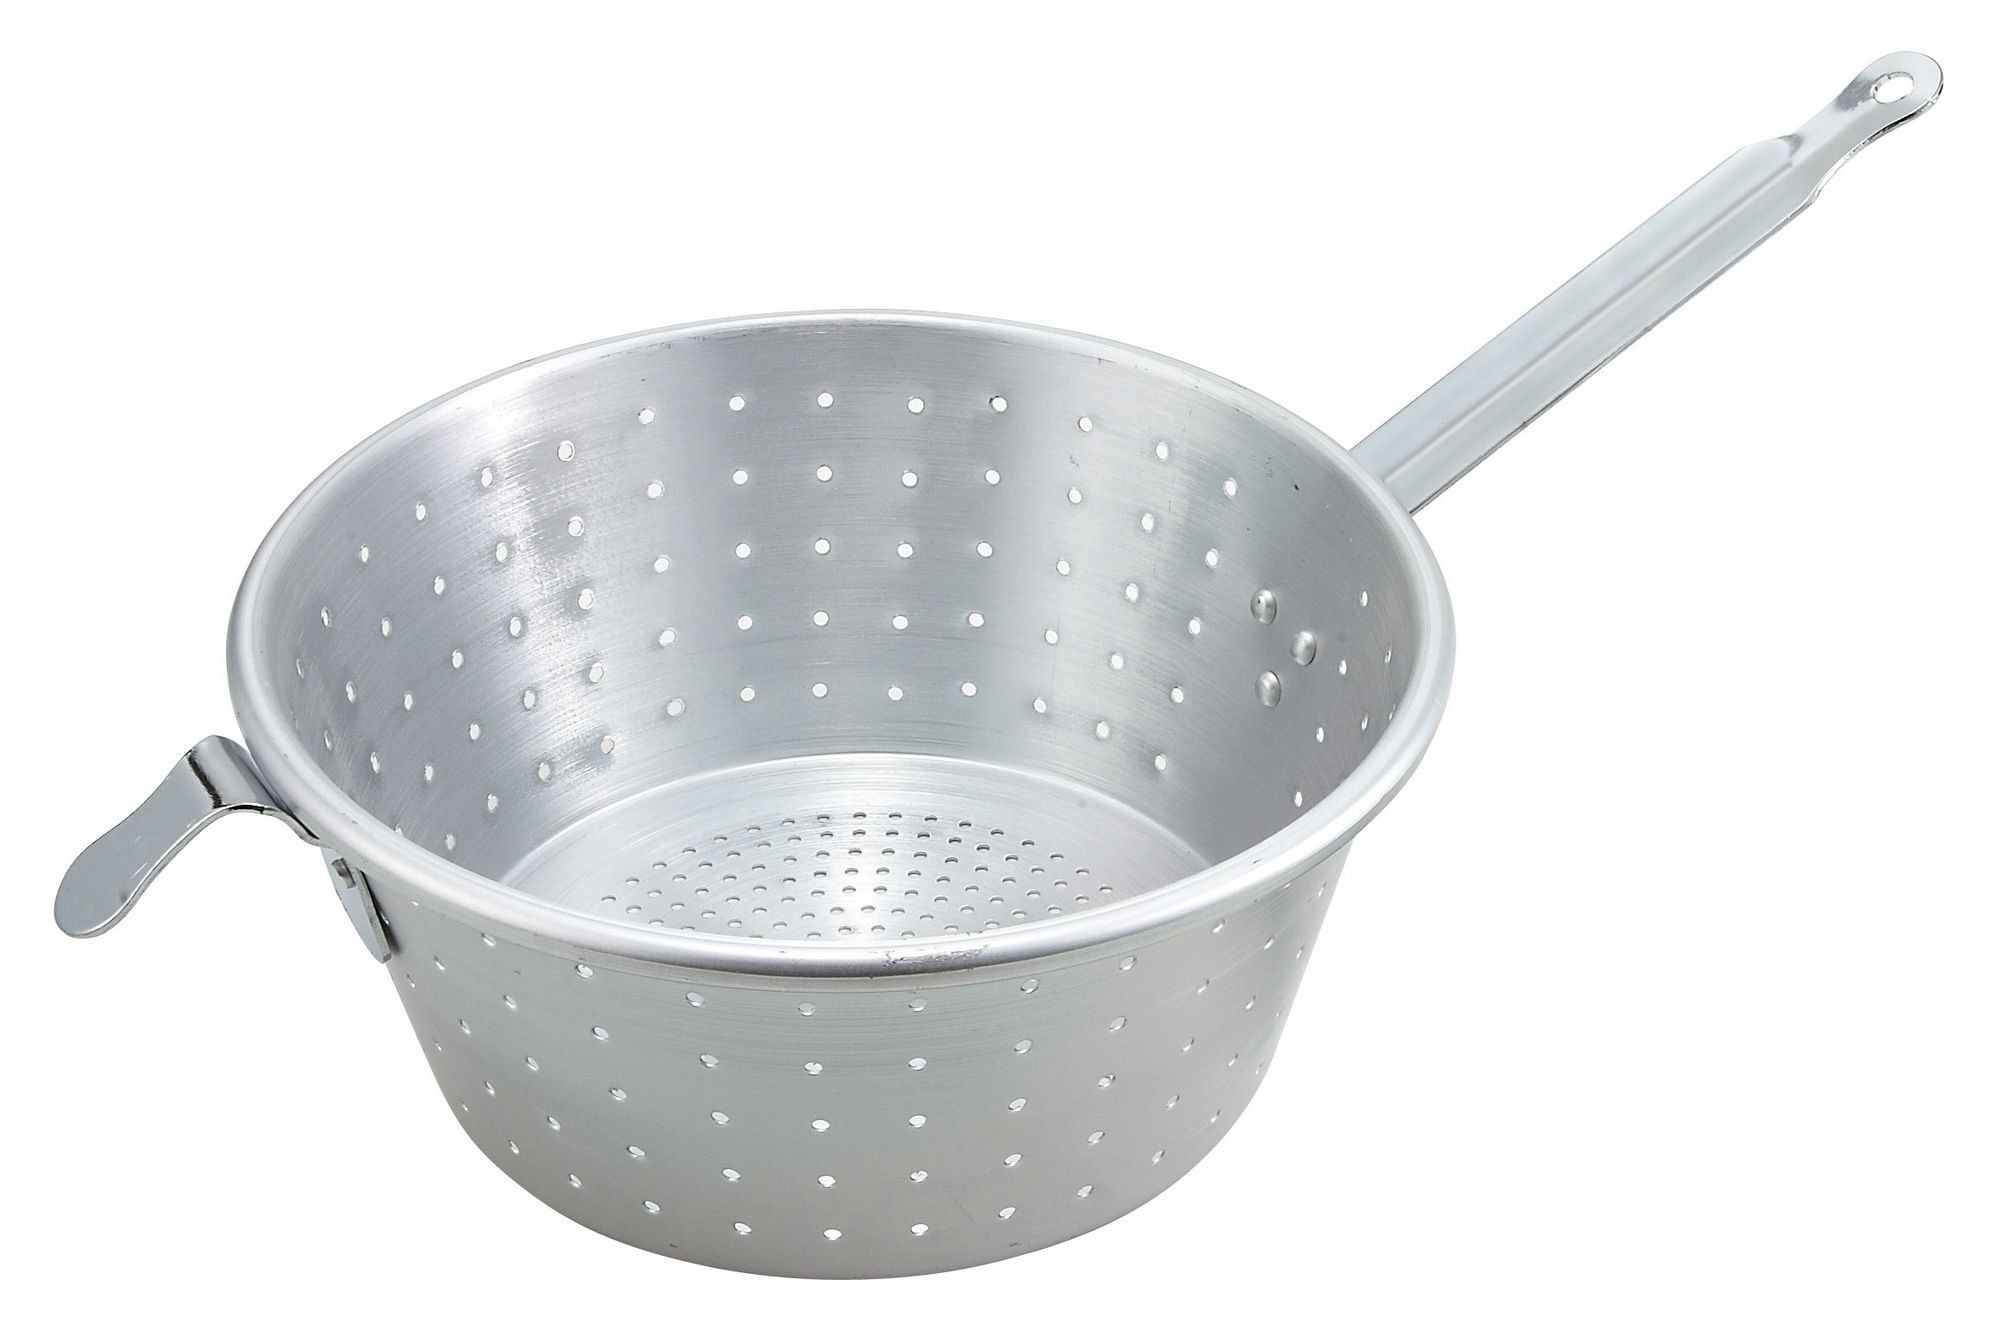 Aluminum Spaghetti Strainer With Handle - 10 Dia.